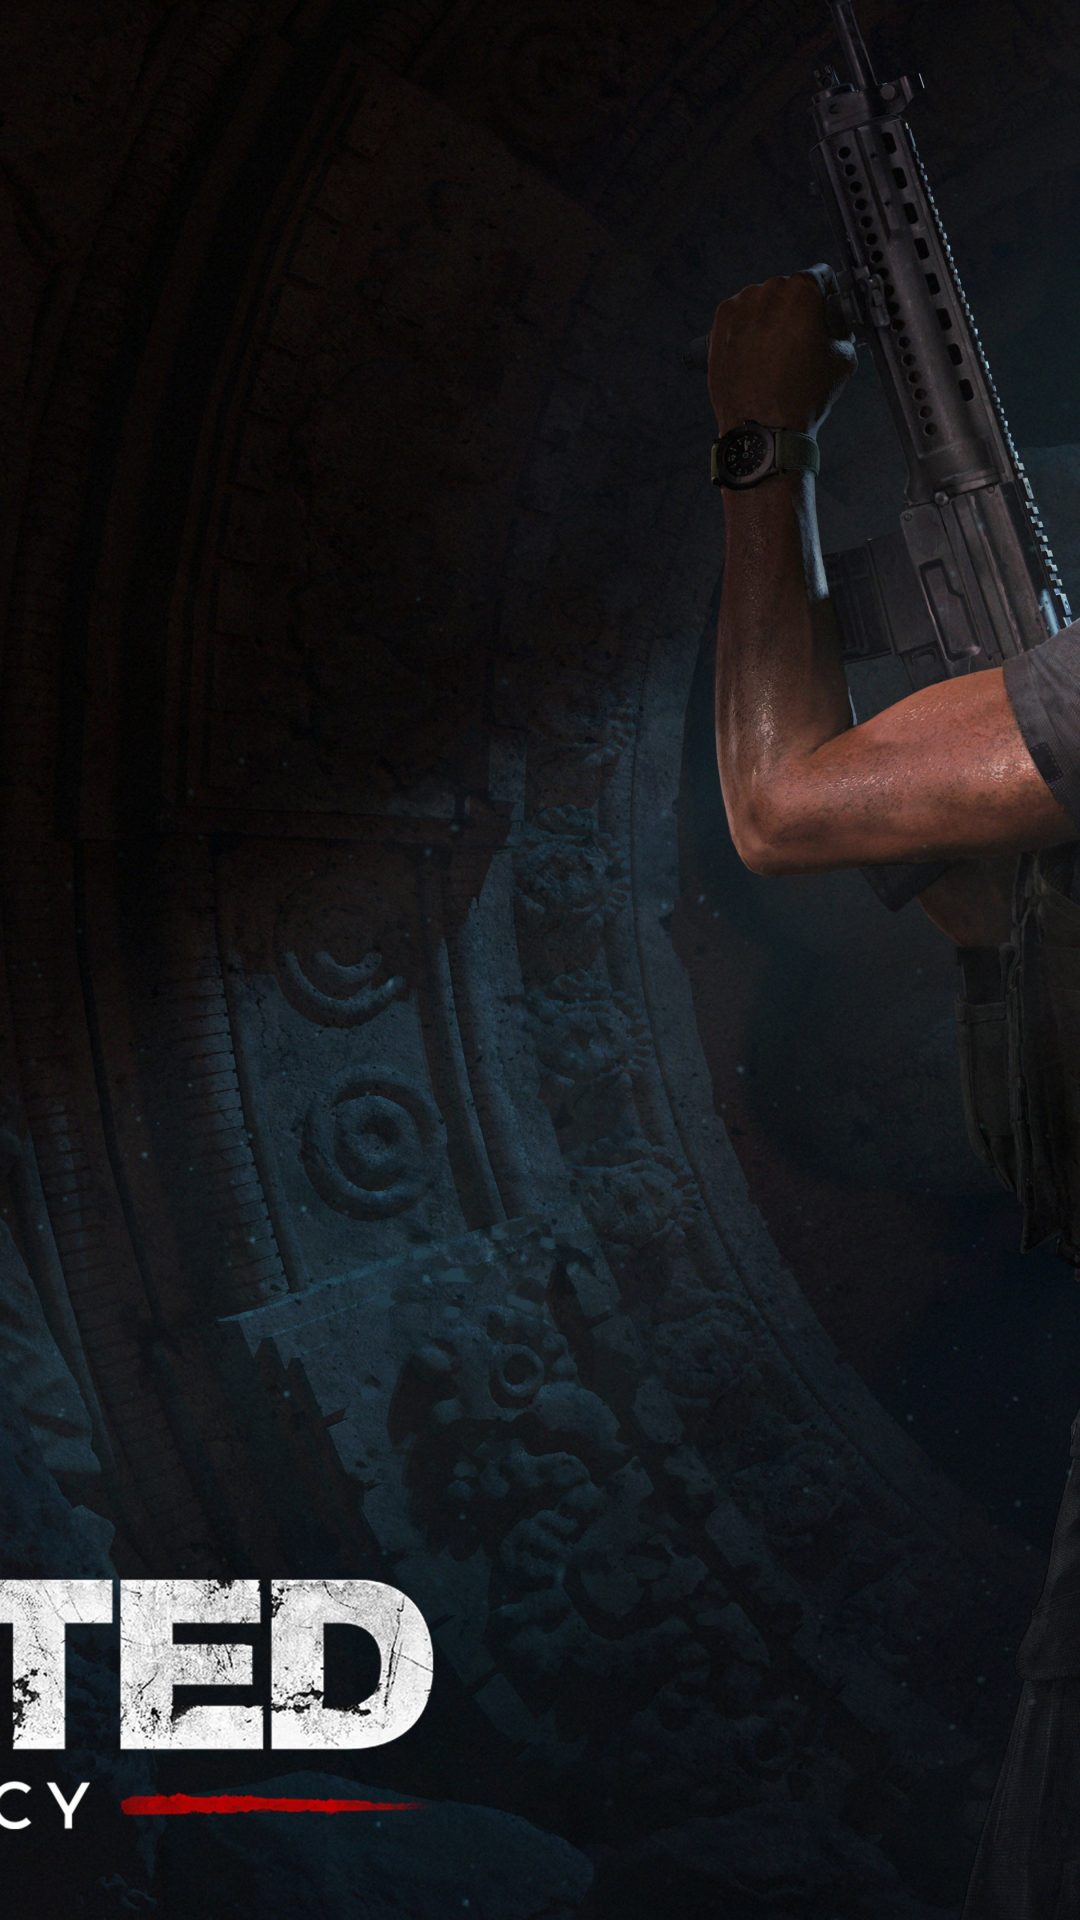 Uncharted The Lost Legacy Wallpaper 4K 8K | HD Wallpaper ...